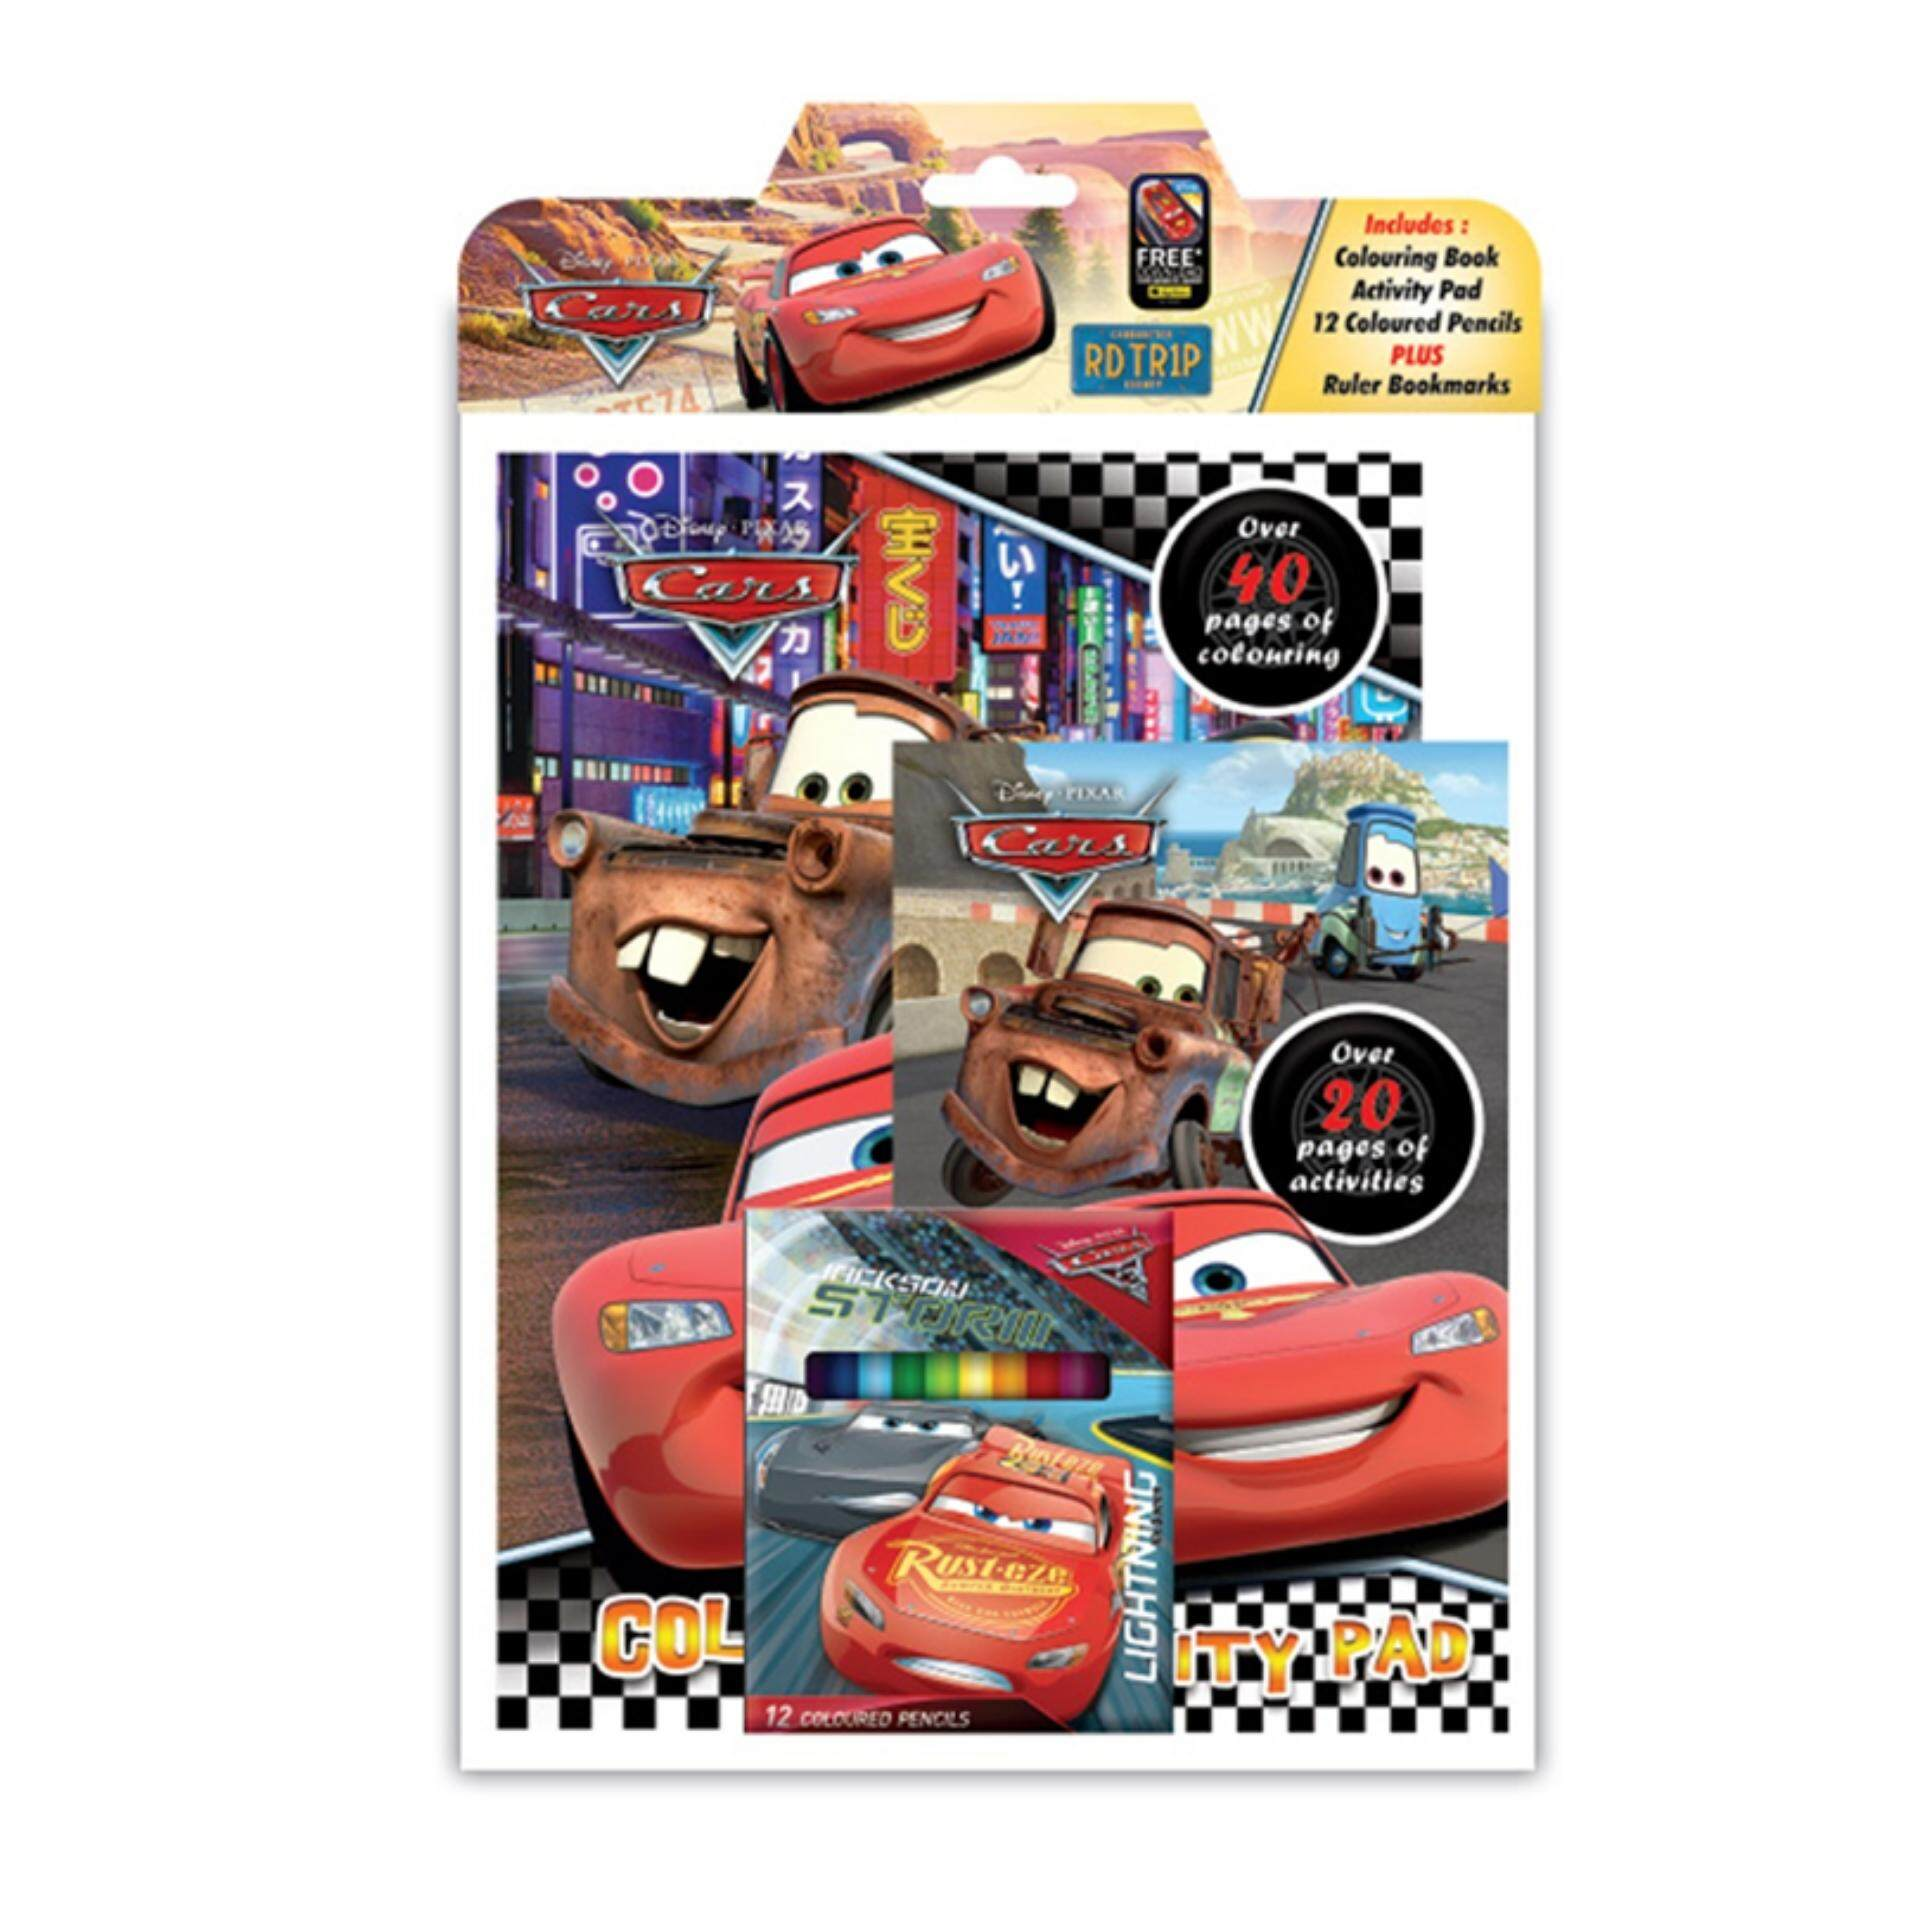 Disney Pixar Cars 3 Colouring Book With Activity Pad Set - Mcqueen